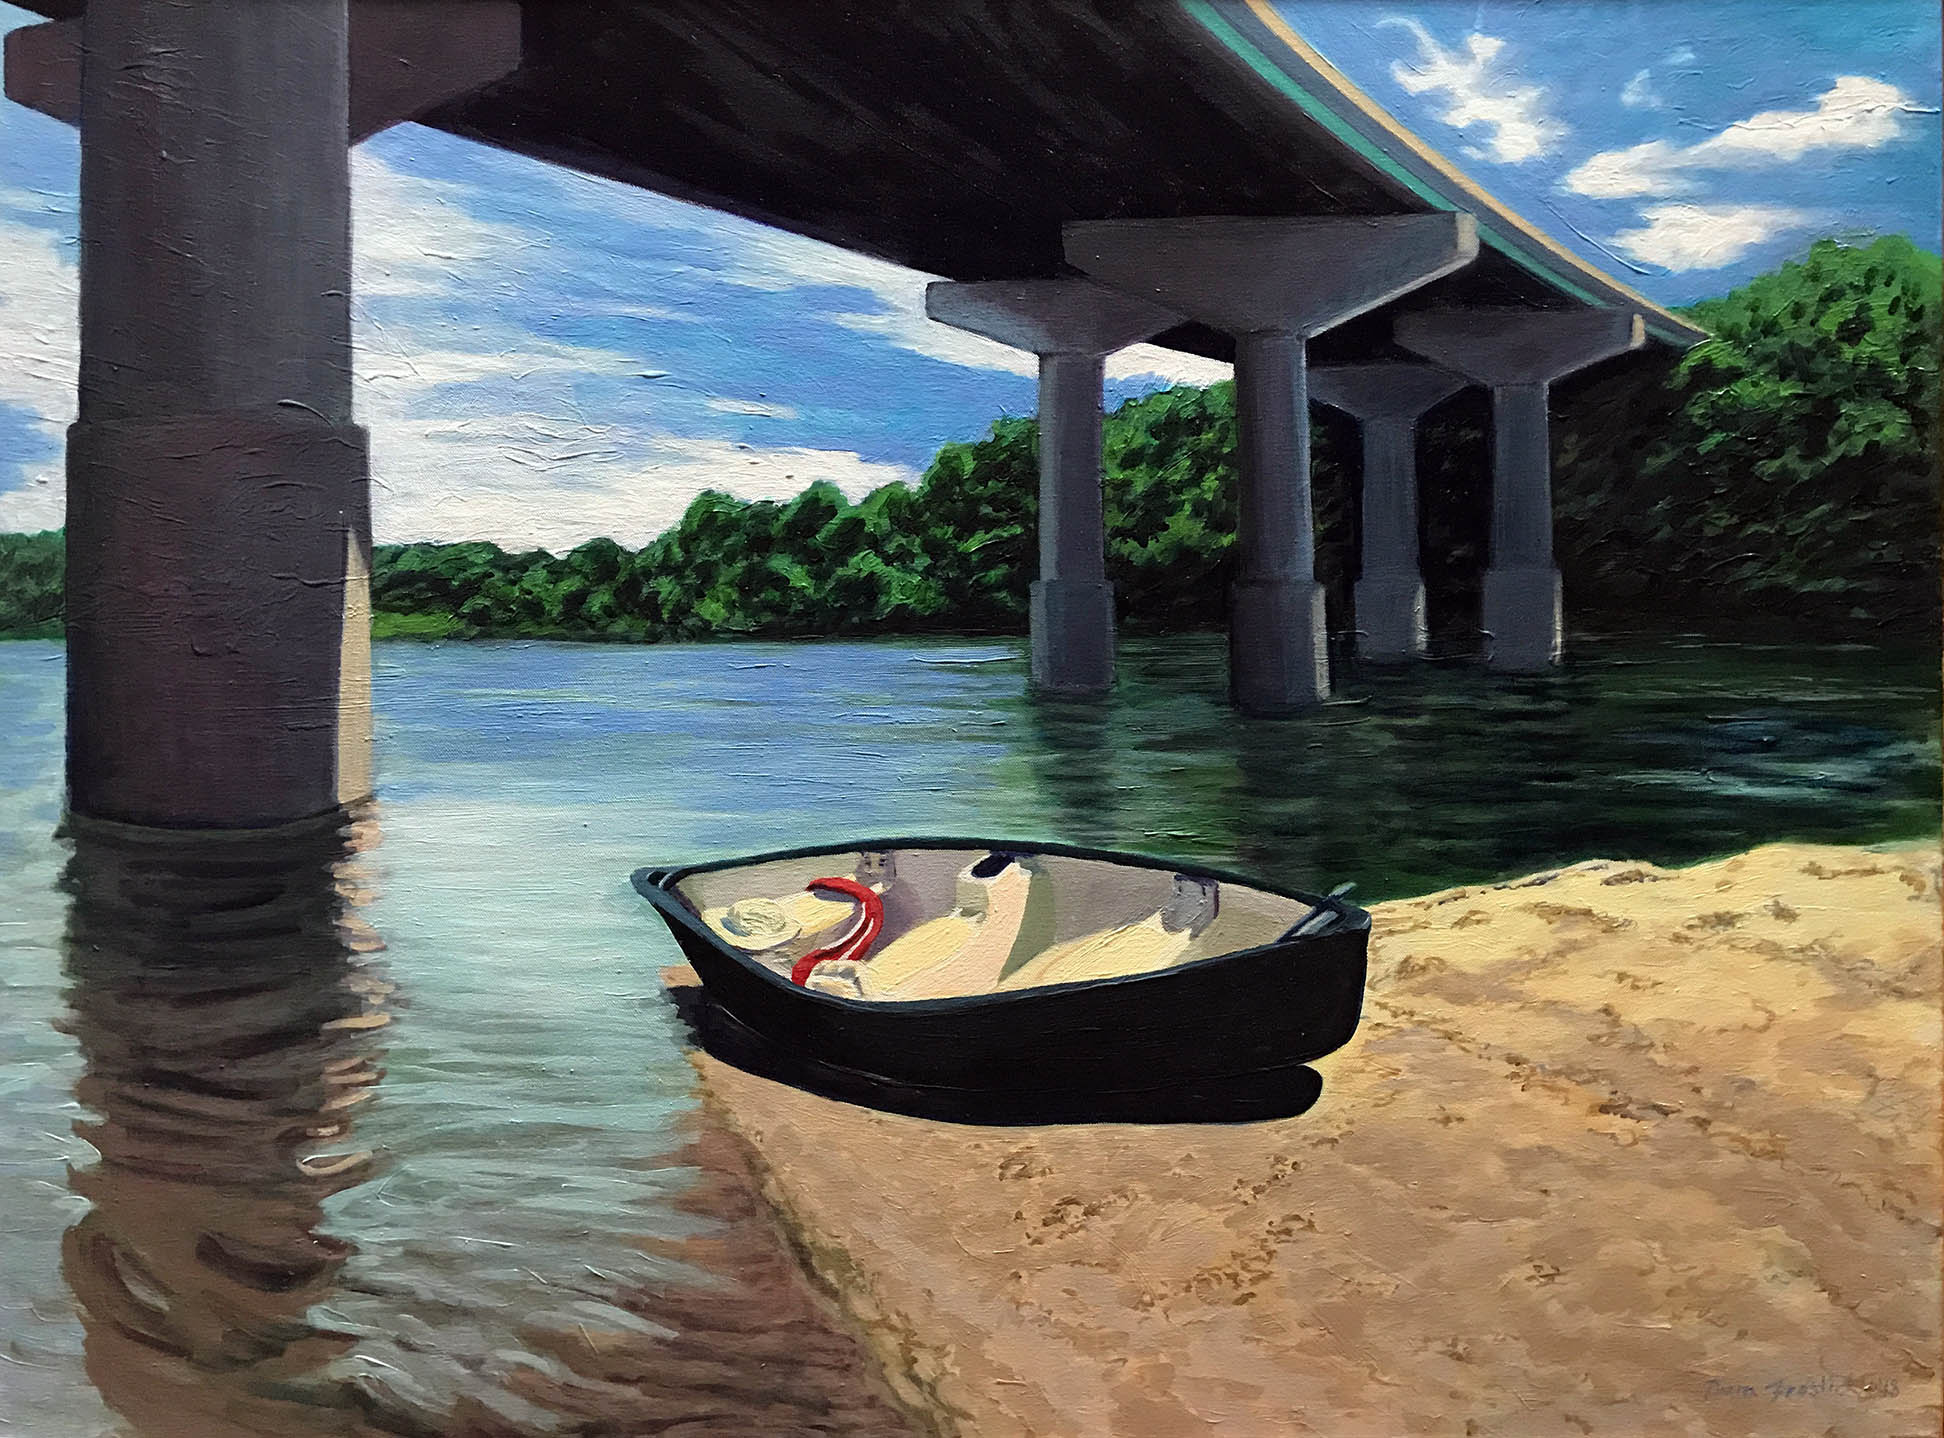 Underneath the Willey Bridge with a Canoe